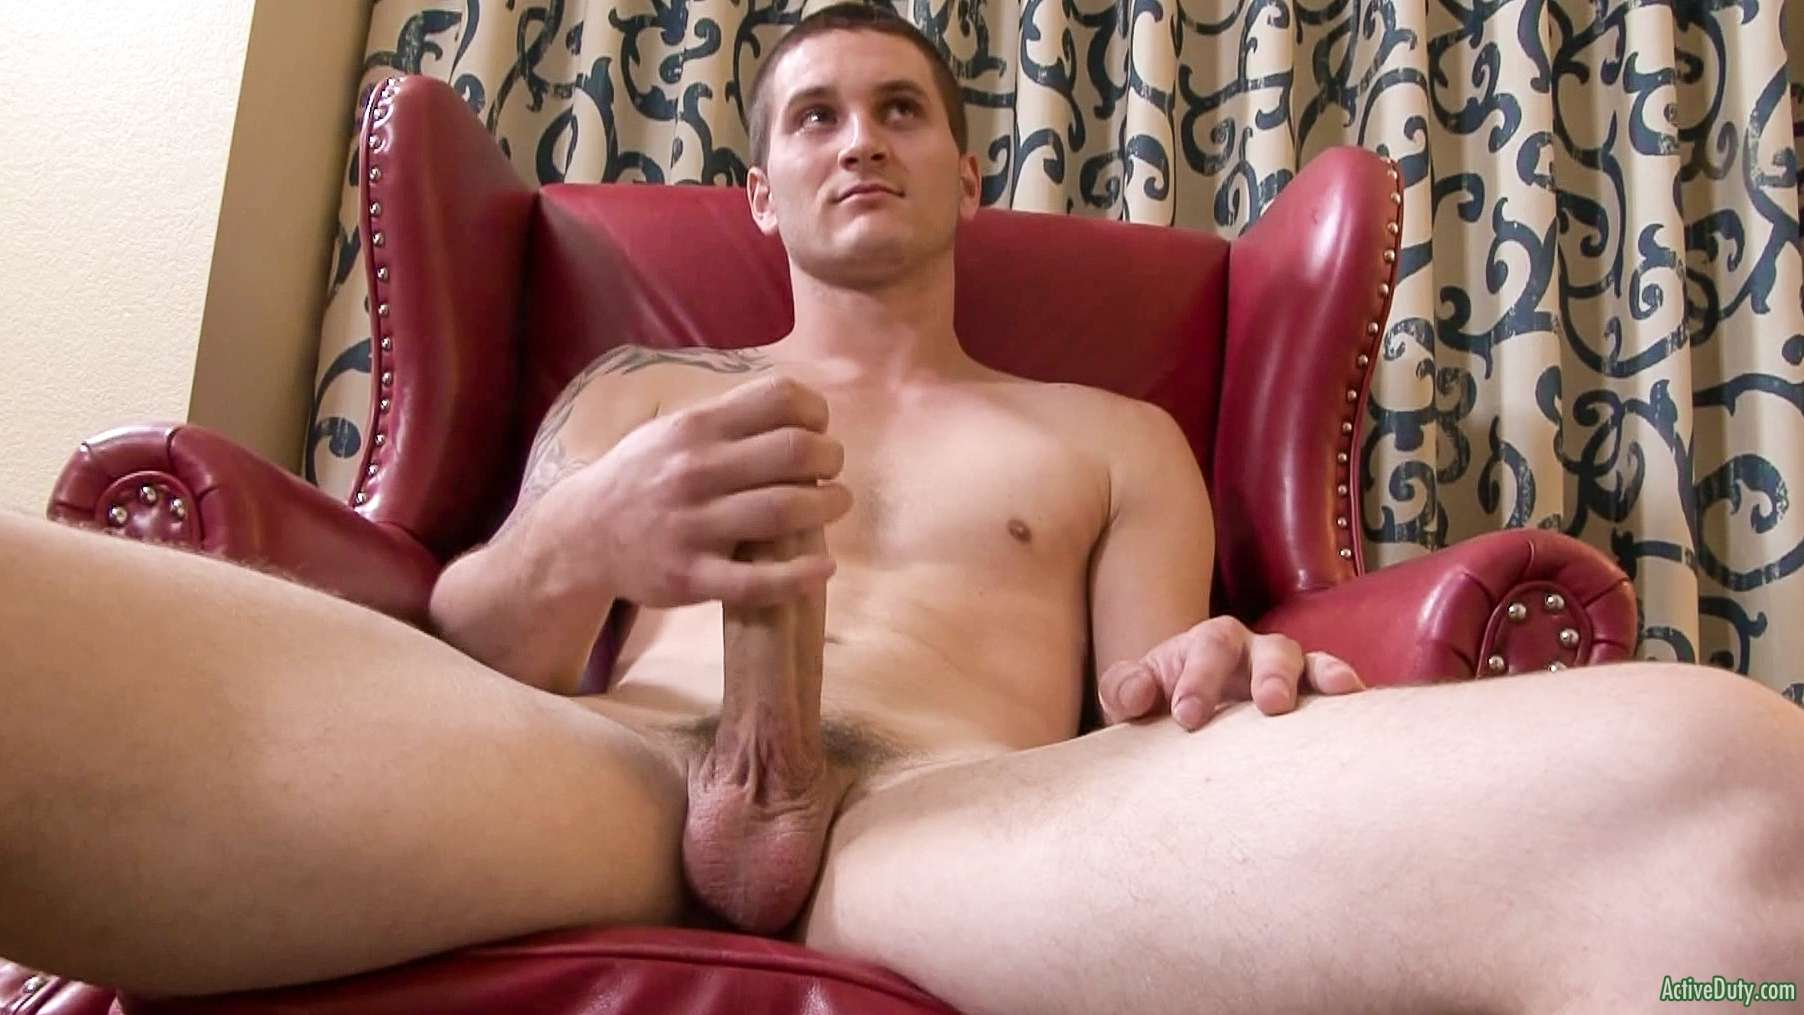 hung straight guy wanking on video